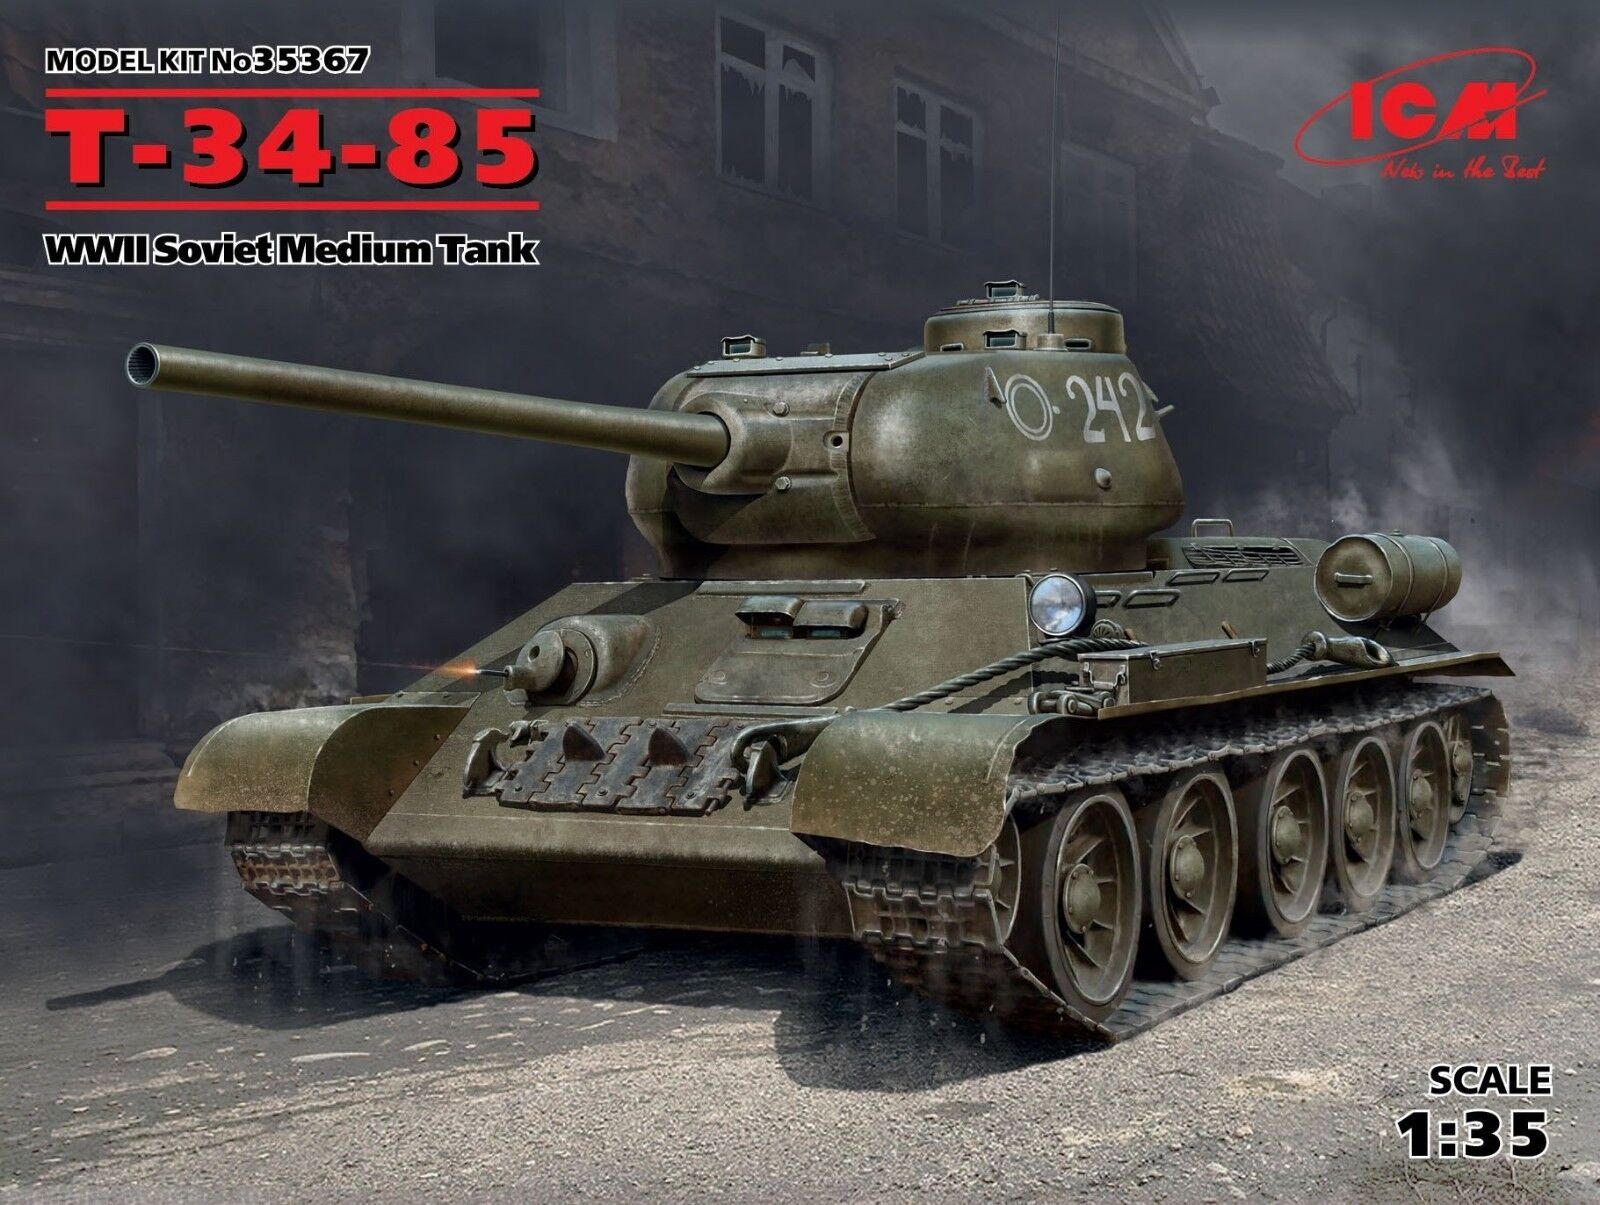 ICM MODELS 35367 SOVIET MEDIUM TANK T-34-85 SCALE MODEL KIT 1 35 NEW WWII